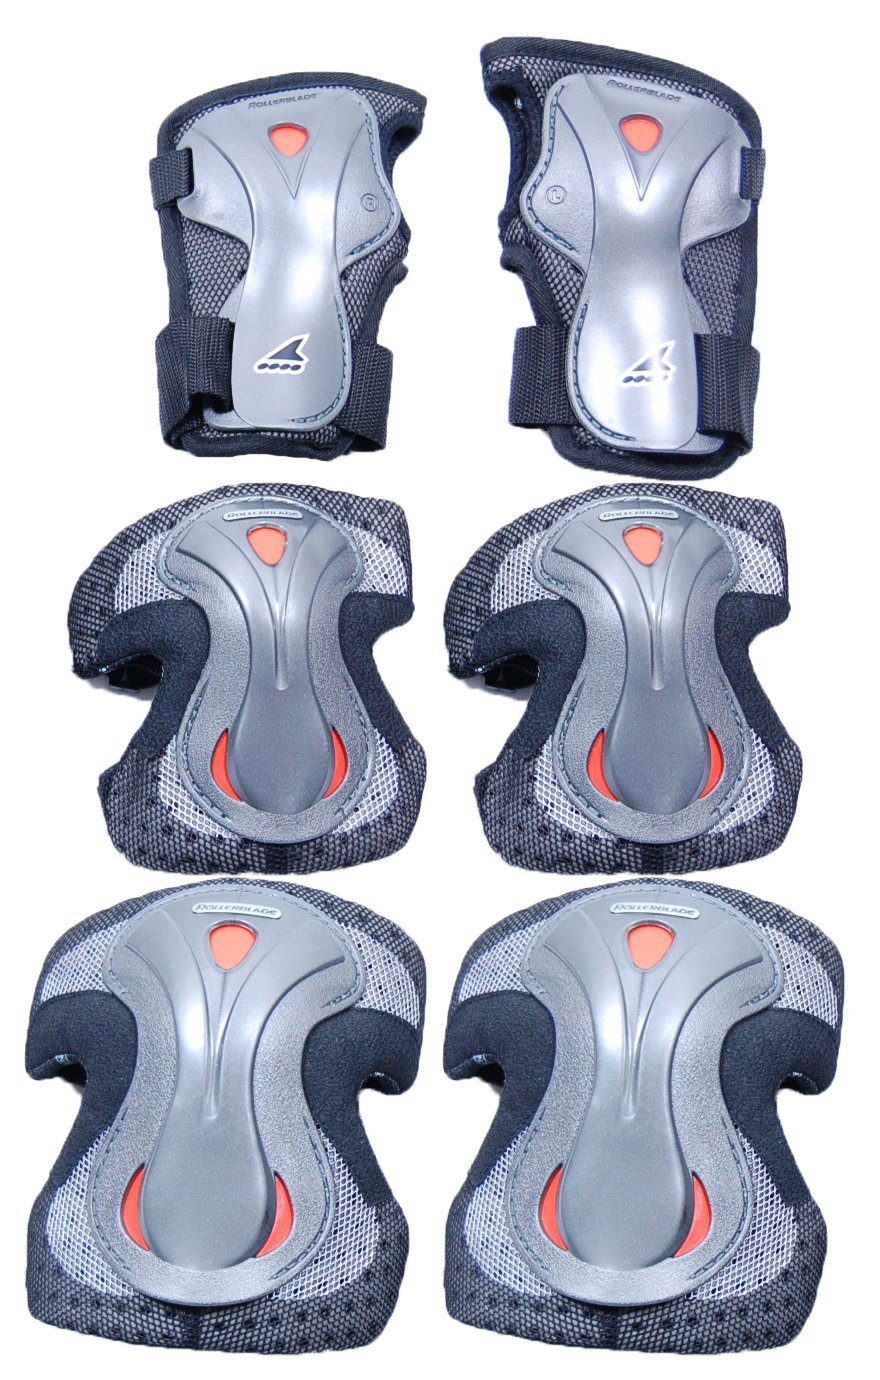 Rollerblade LUX Plus 3-Pack Protective Gear